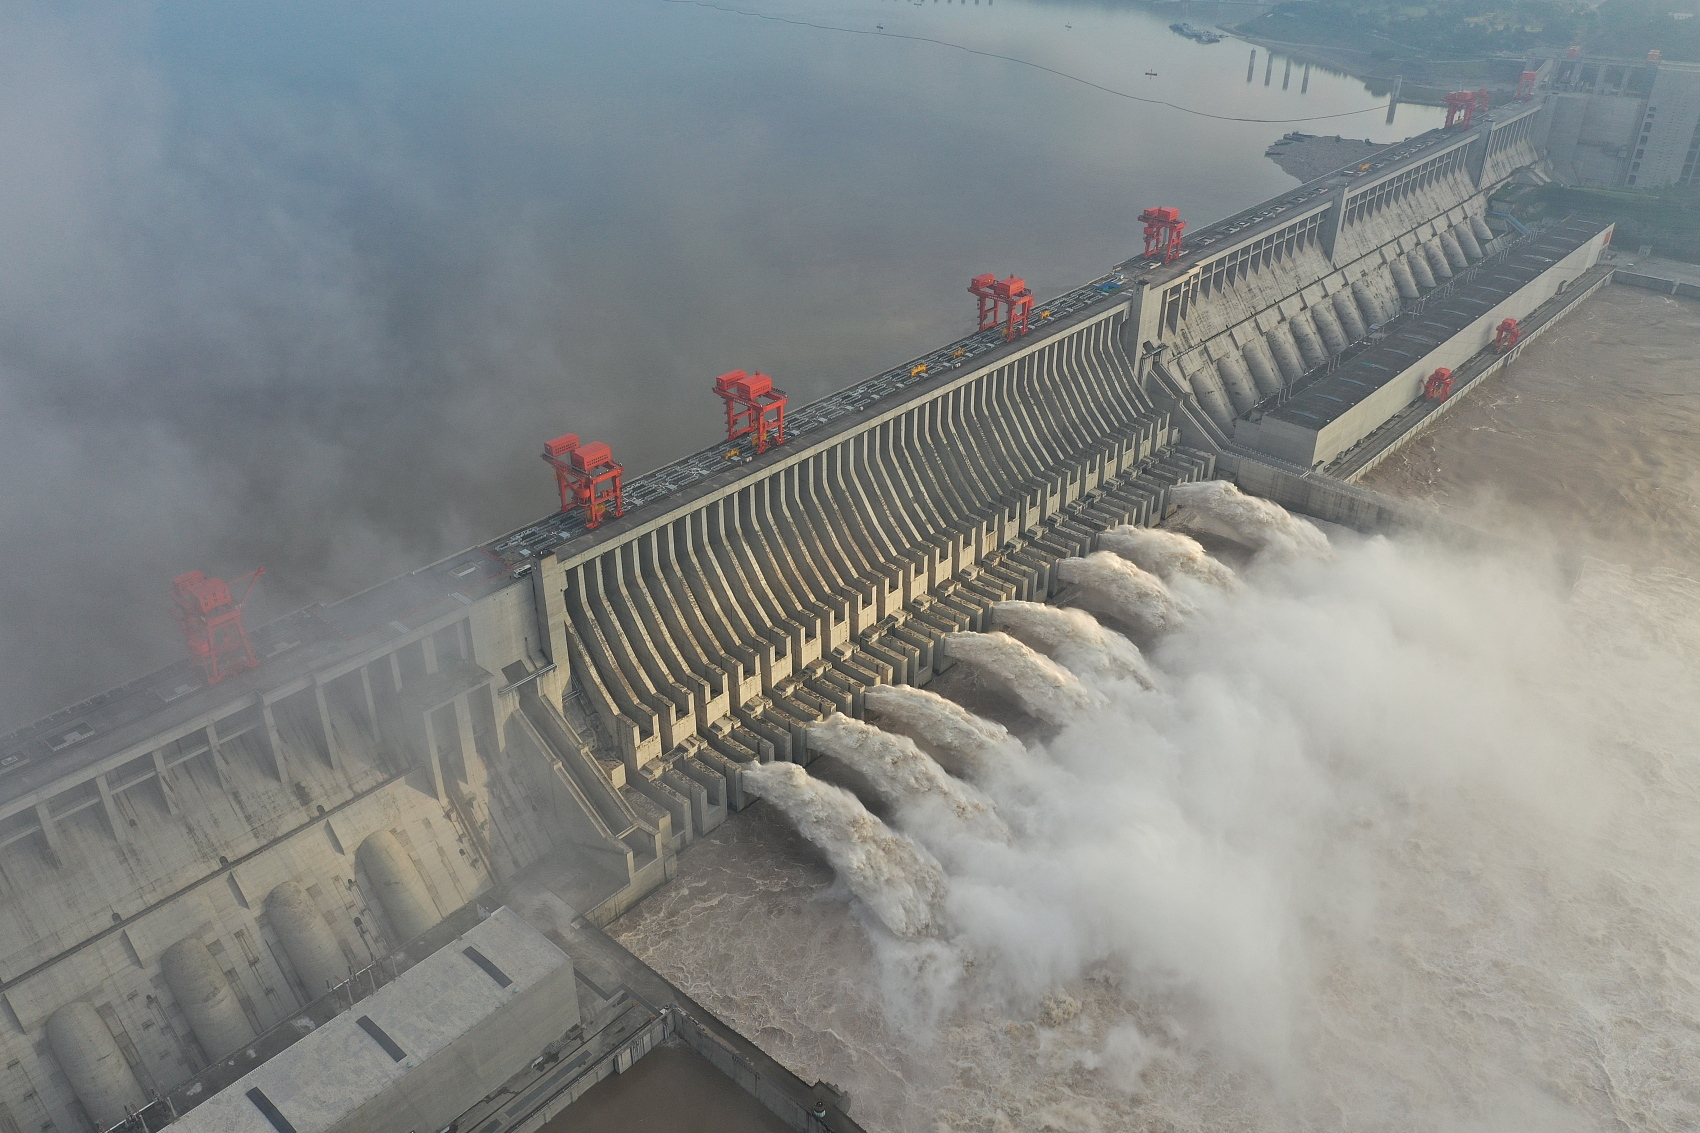 Three Gorges reservoir facing largest flood peak in its history